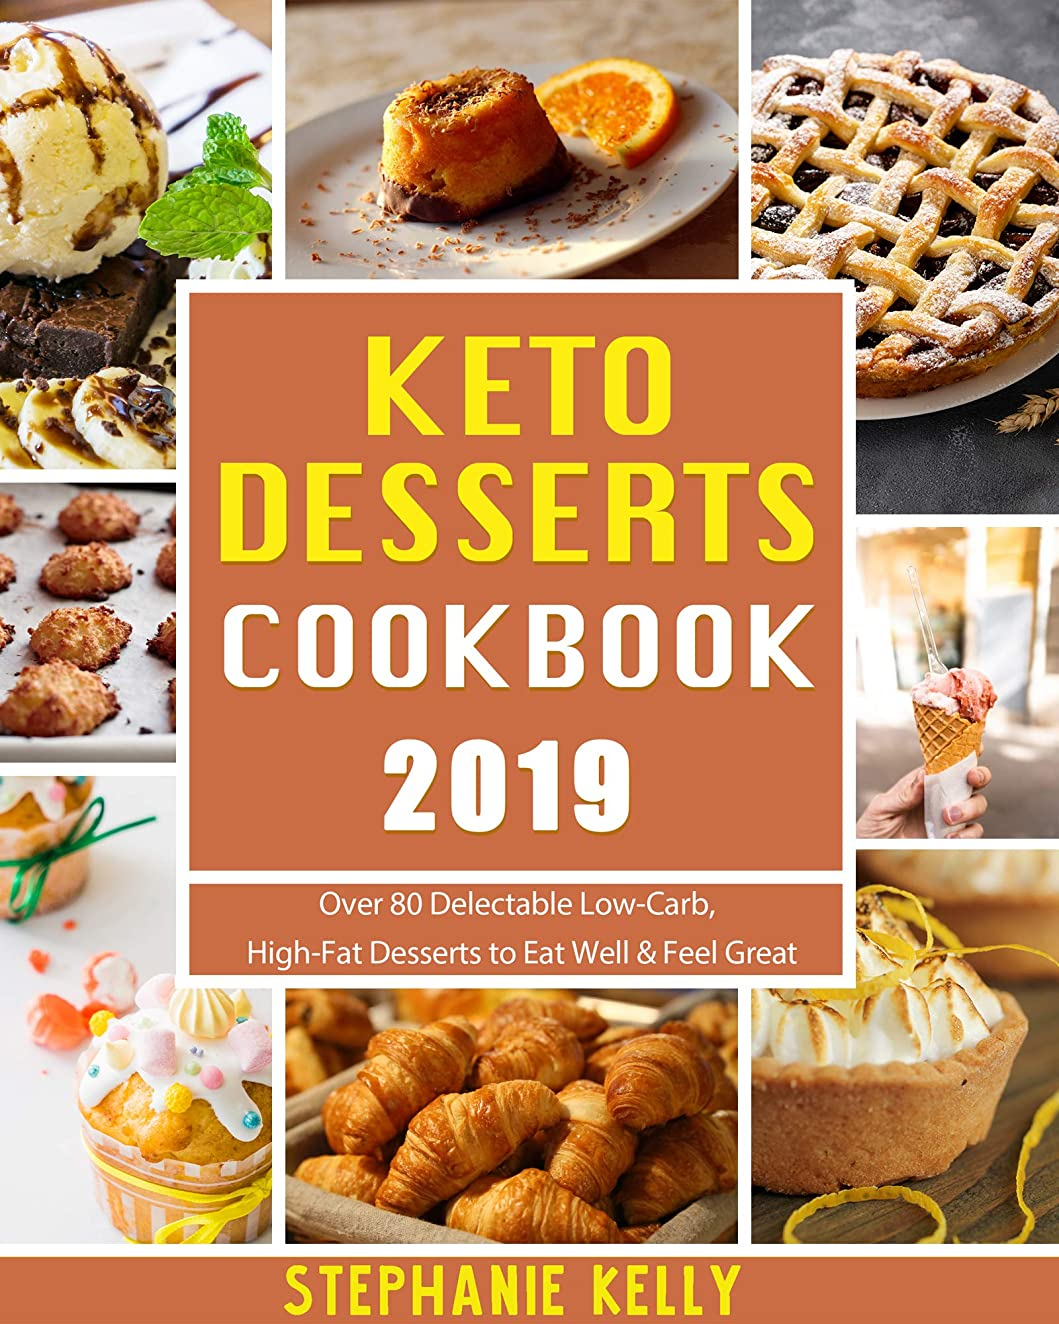 Keto Desserts Cookbook 2019: Over 80 Delectable Low-Carb, High-Fat Desserts to Eat Well & Feel Great (English Edition)